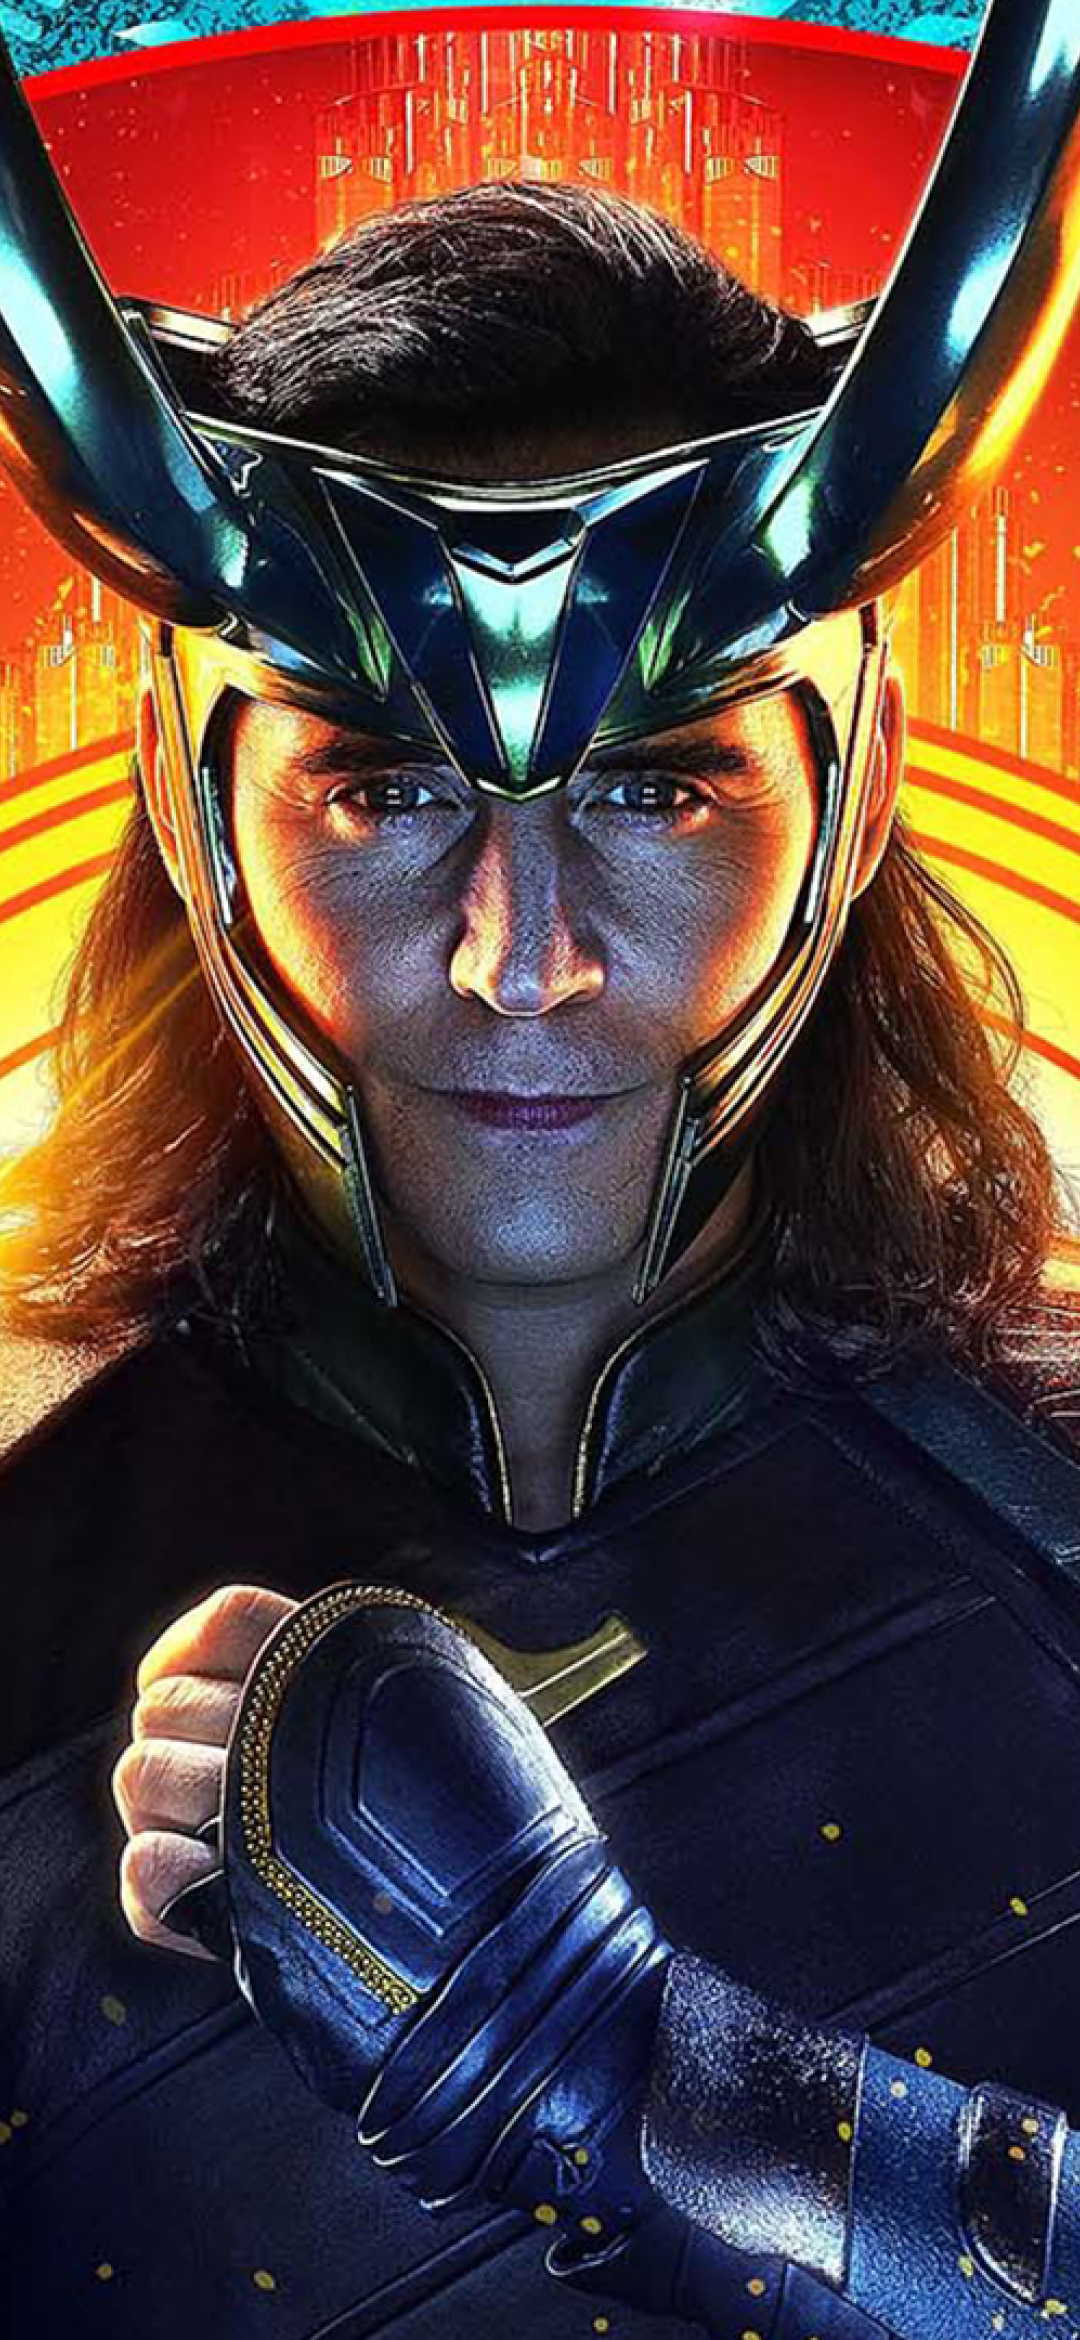 1080x2340 Tom Hiddleston As Loki 1080x2340 Resolution Wallpaper Hd Movies 4k Wallpapers Images Photos And Background